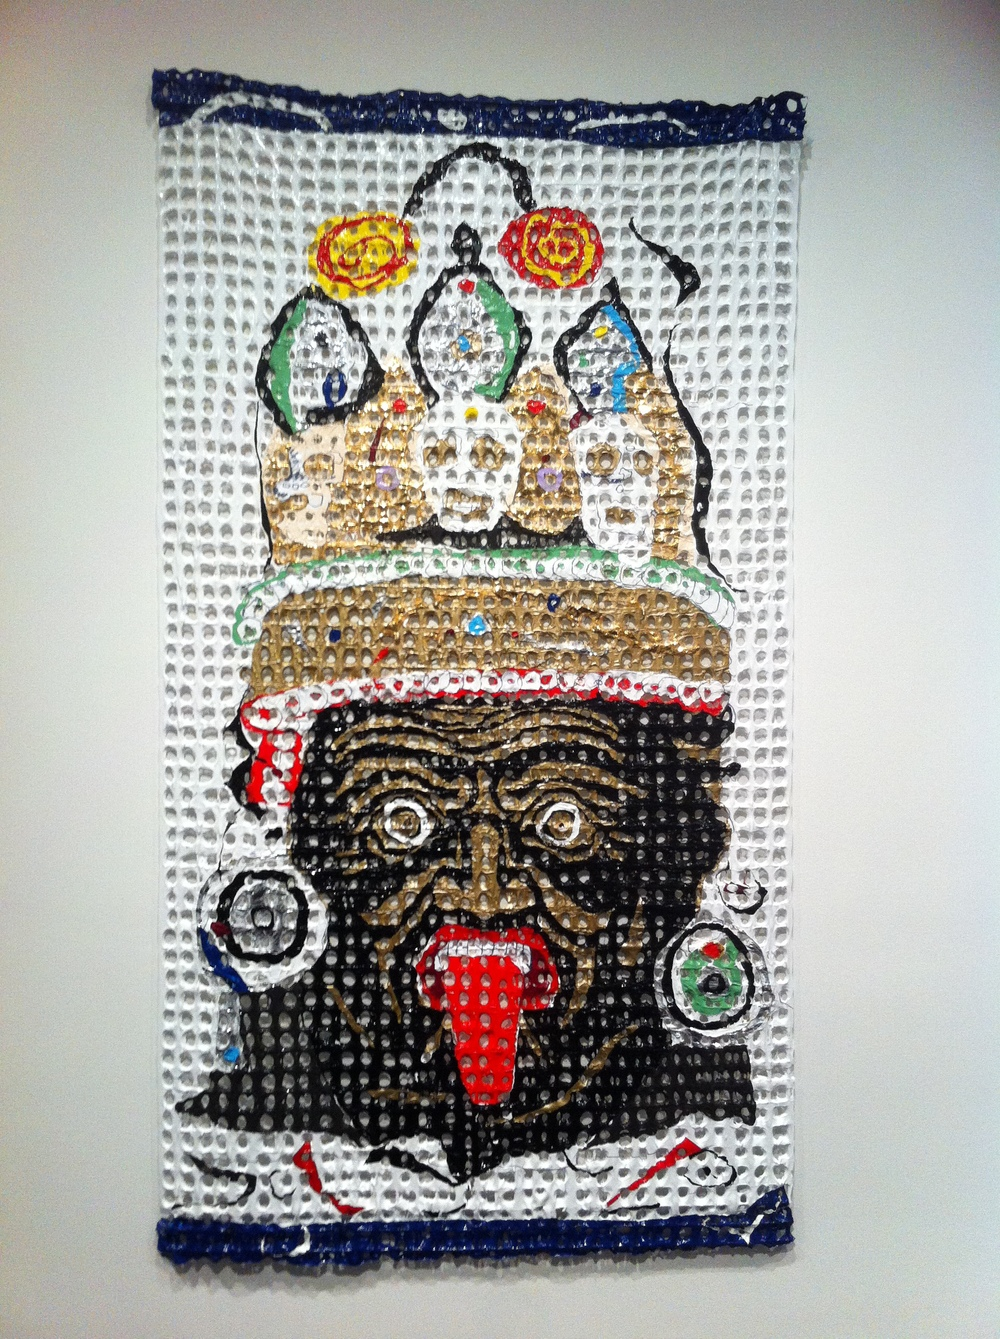 6. Kesang Lamdark, Dorge Drakkten and Kiss, 2012. Melted plastic, acrylic and metallic foil. CU Art Museum